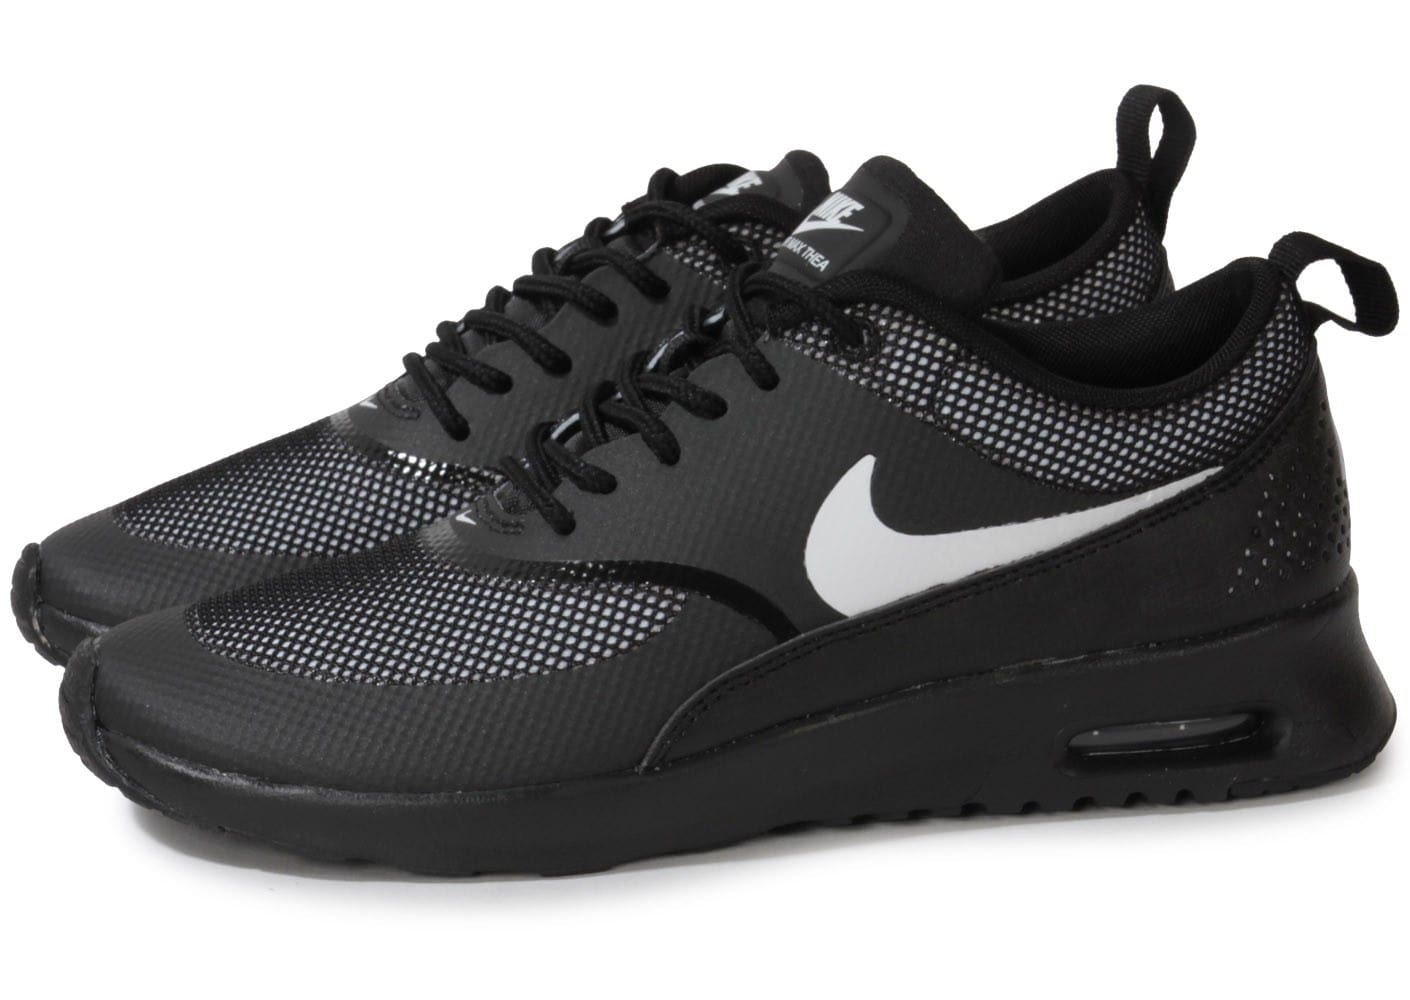 nike air max thea black white chaussures chaussures chausport. Black Bedroom Furniture Sets. Home Design Ideas